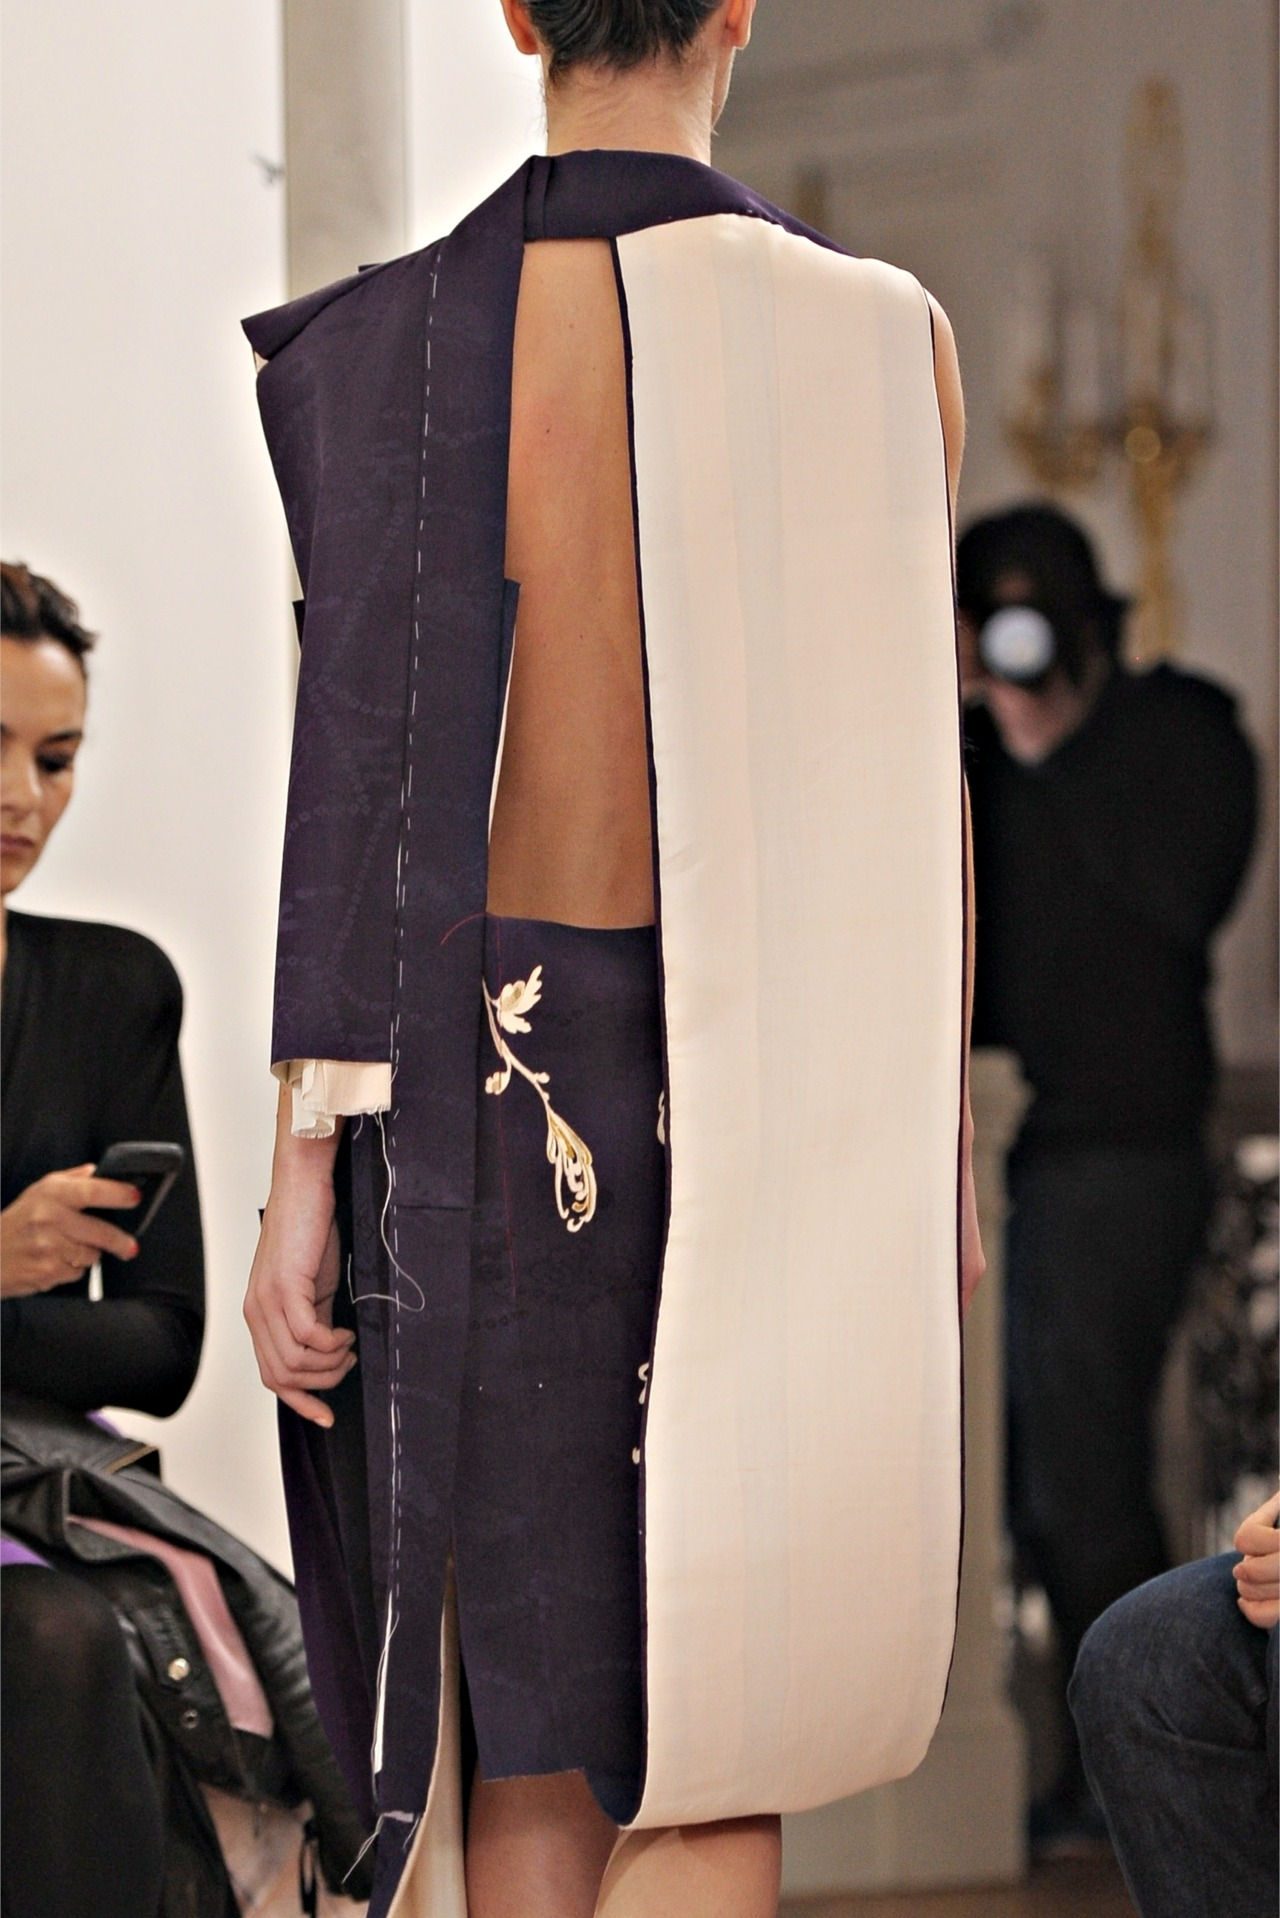 Maison Martin Margiela Fall 2012 Ready to Wear